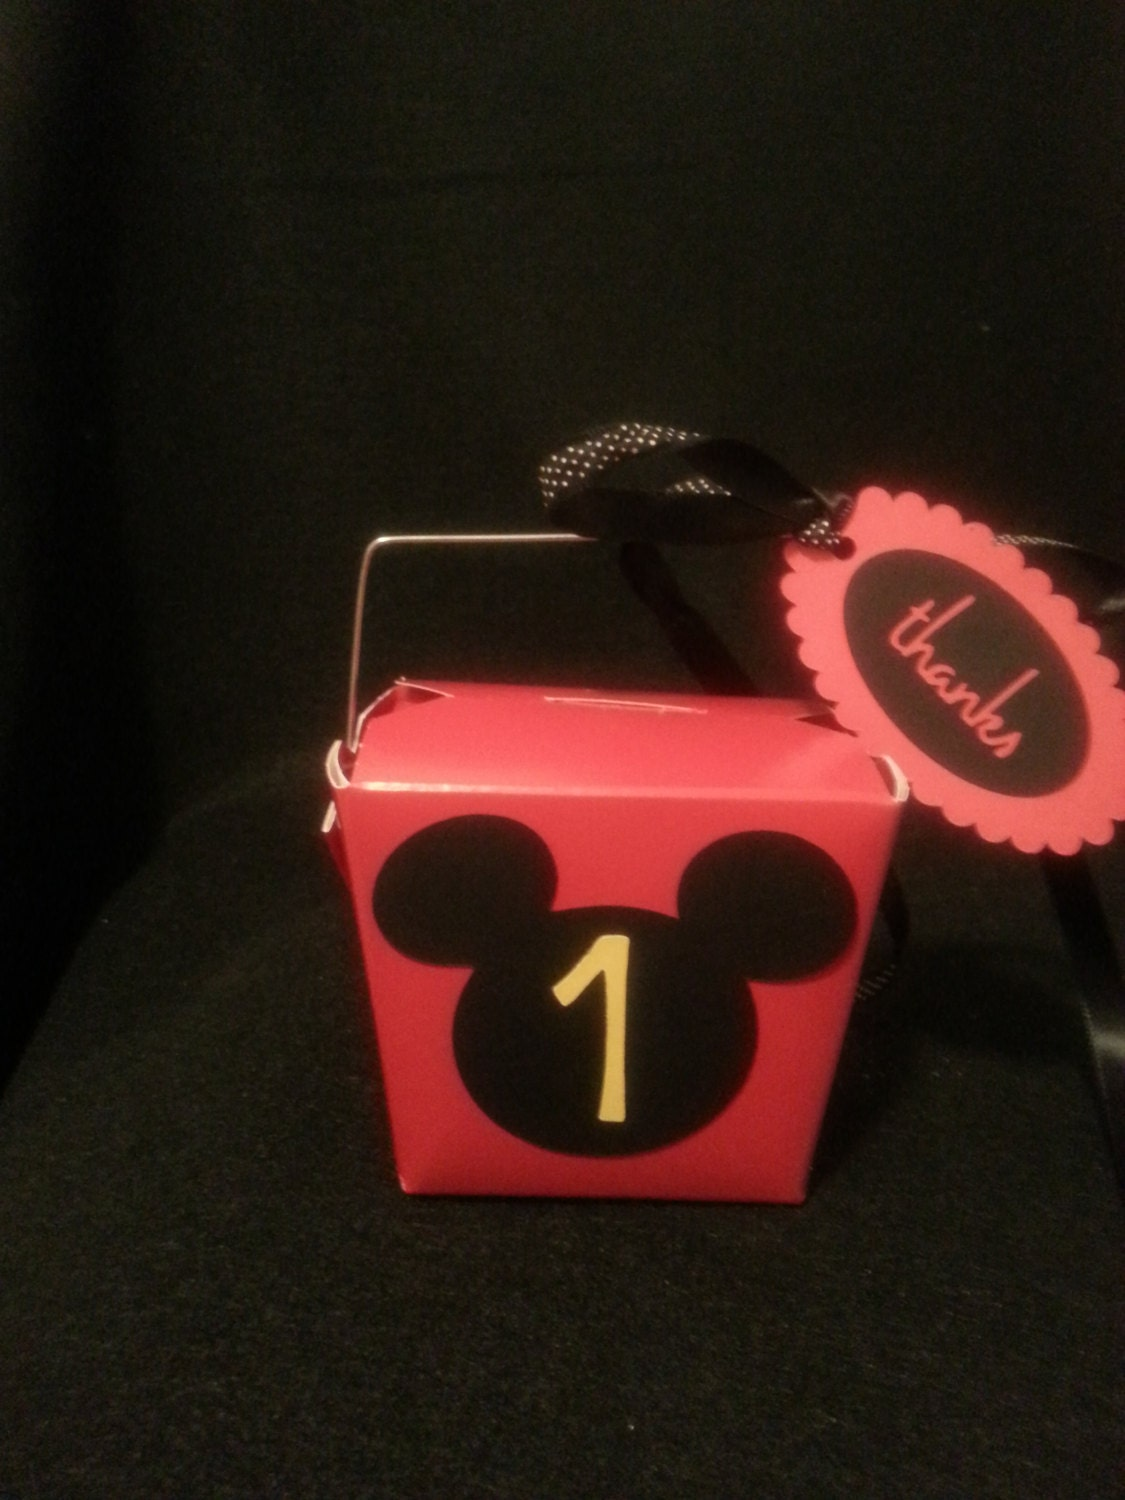 Party Favor Chinese Take Out Boxes : Mickey mouse inspired red chinese take out favor boxes